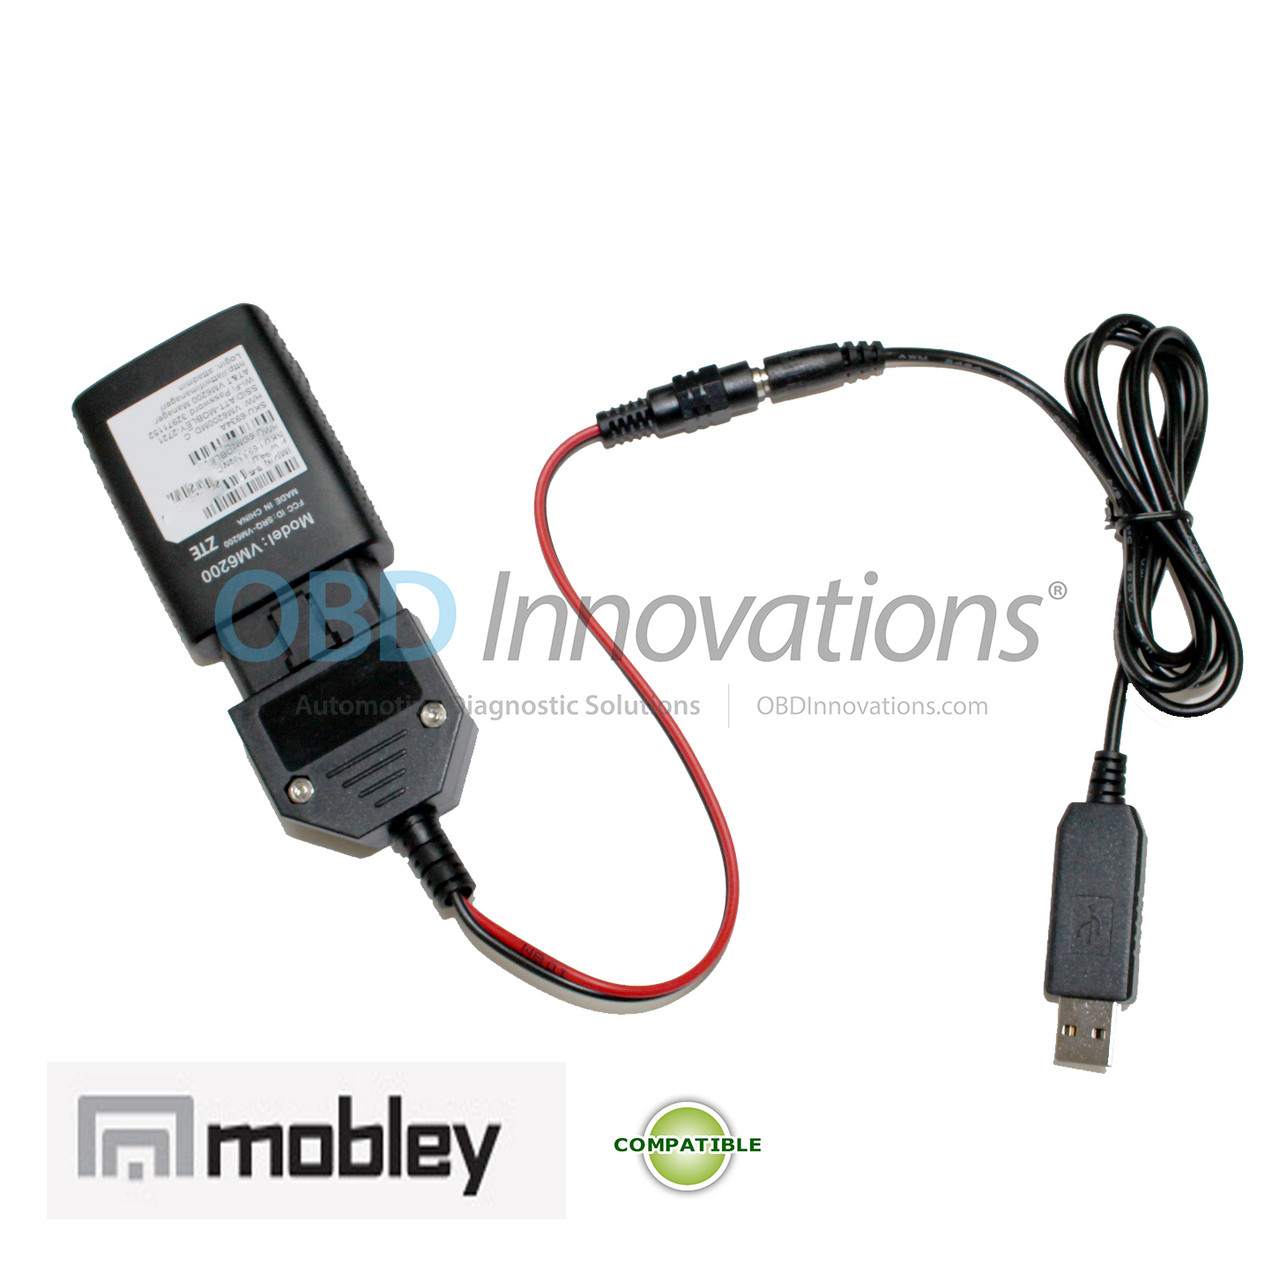 USB OBD2 Power Adapter for AT&T ZTE Mobley 4G LTE WiFi Hotspot